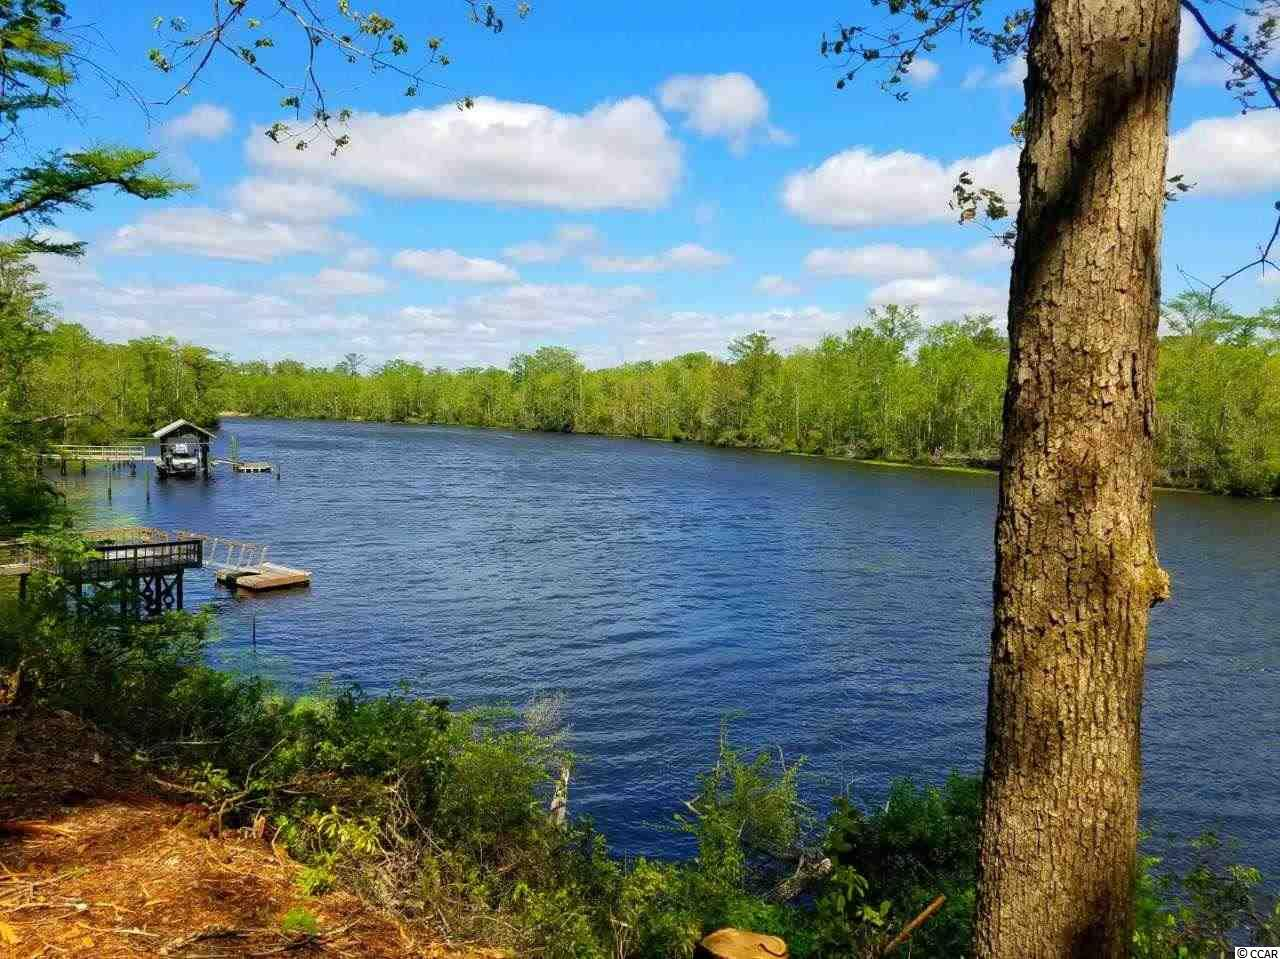 Oversized lot on a high bluff on the Black River with 119 feet of river frontage.  Outstanding views and gorgeous sunsets.  Located just outside of historic Georgetown, SC.  River gives access to the ICW and Atlantic Ocean.  Fresh water safe haven for your boat.   The river is absolutely beautiful, full of life and offers countless areas to explore. Residents enjoy fishing, hunting, water skiing, swimming, paddling or just cruising around taking in the plethora of wildlife activity.